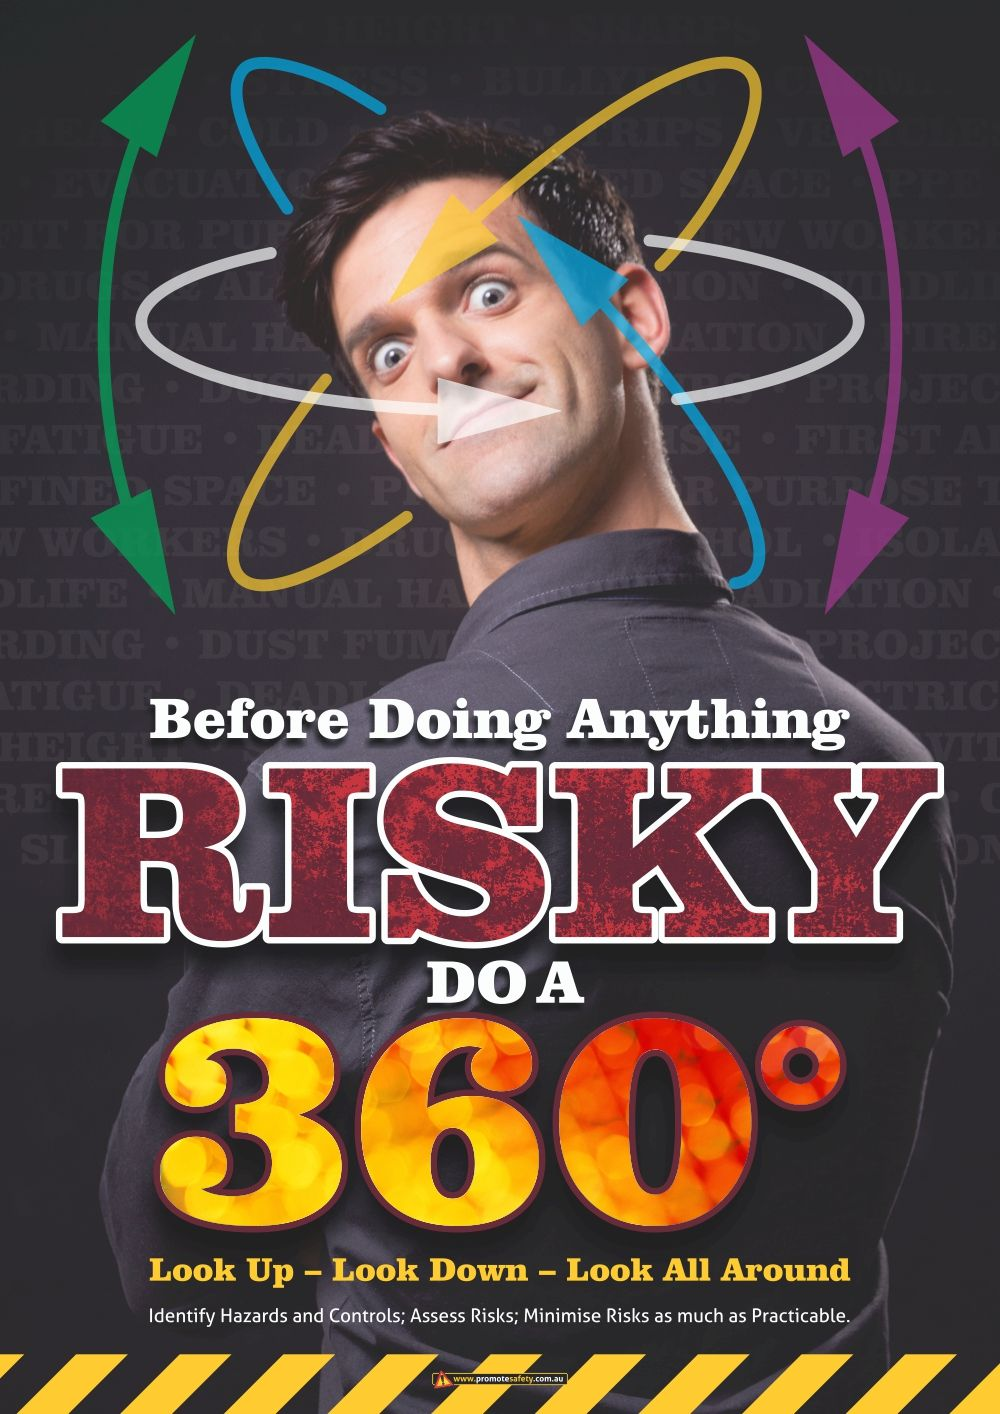 Risky 360 Look Around Safety Posters Thumbnail Workplace